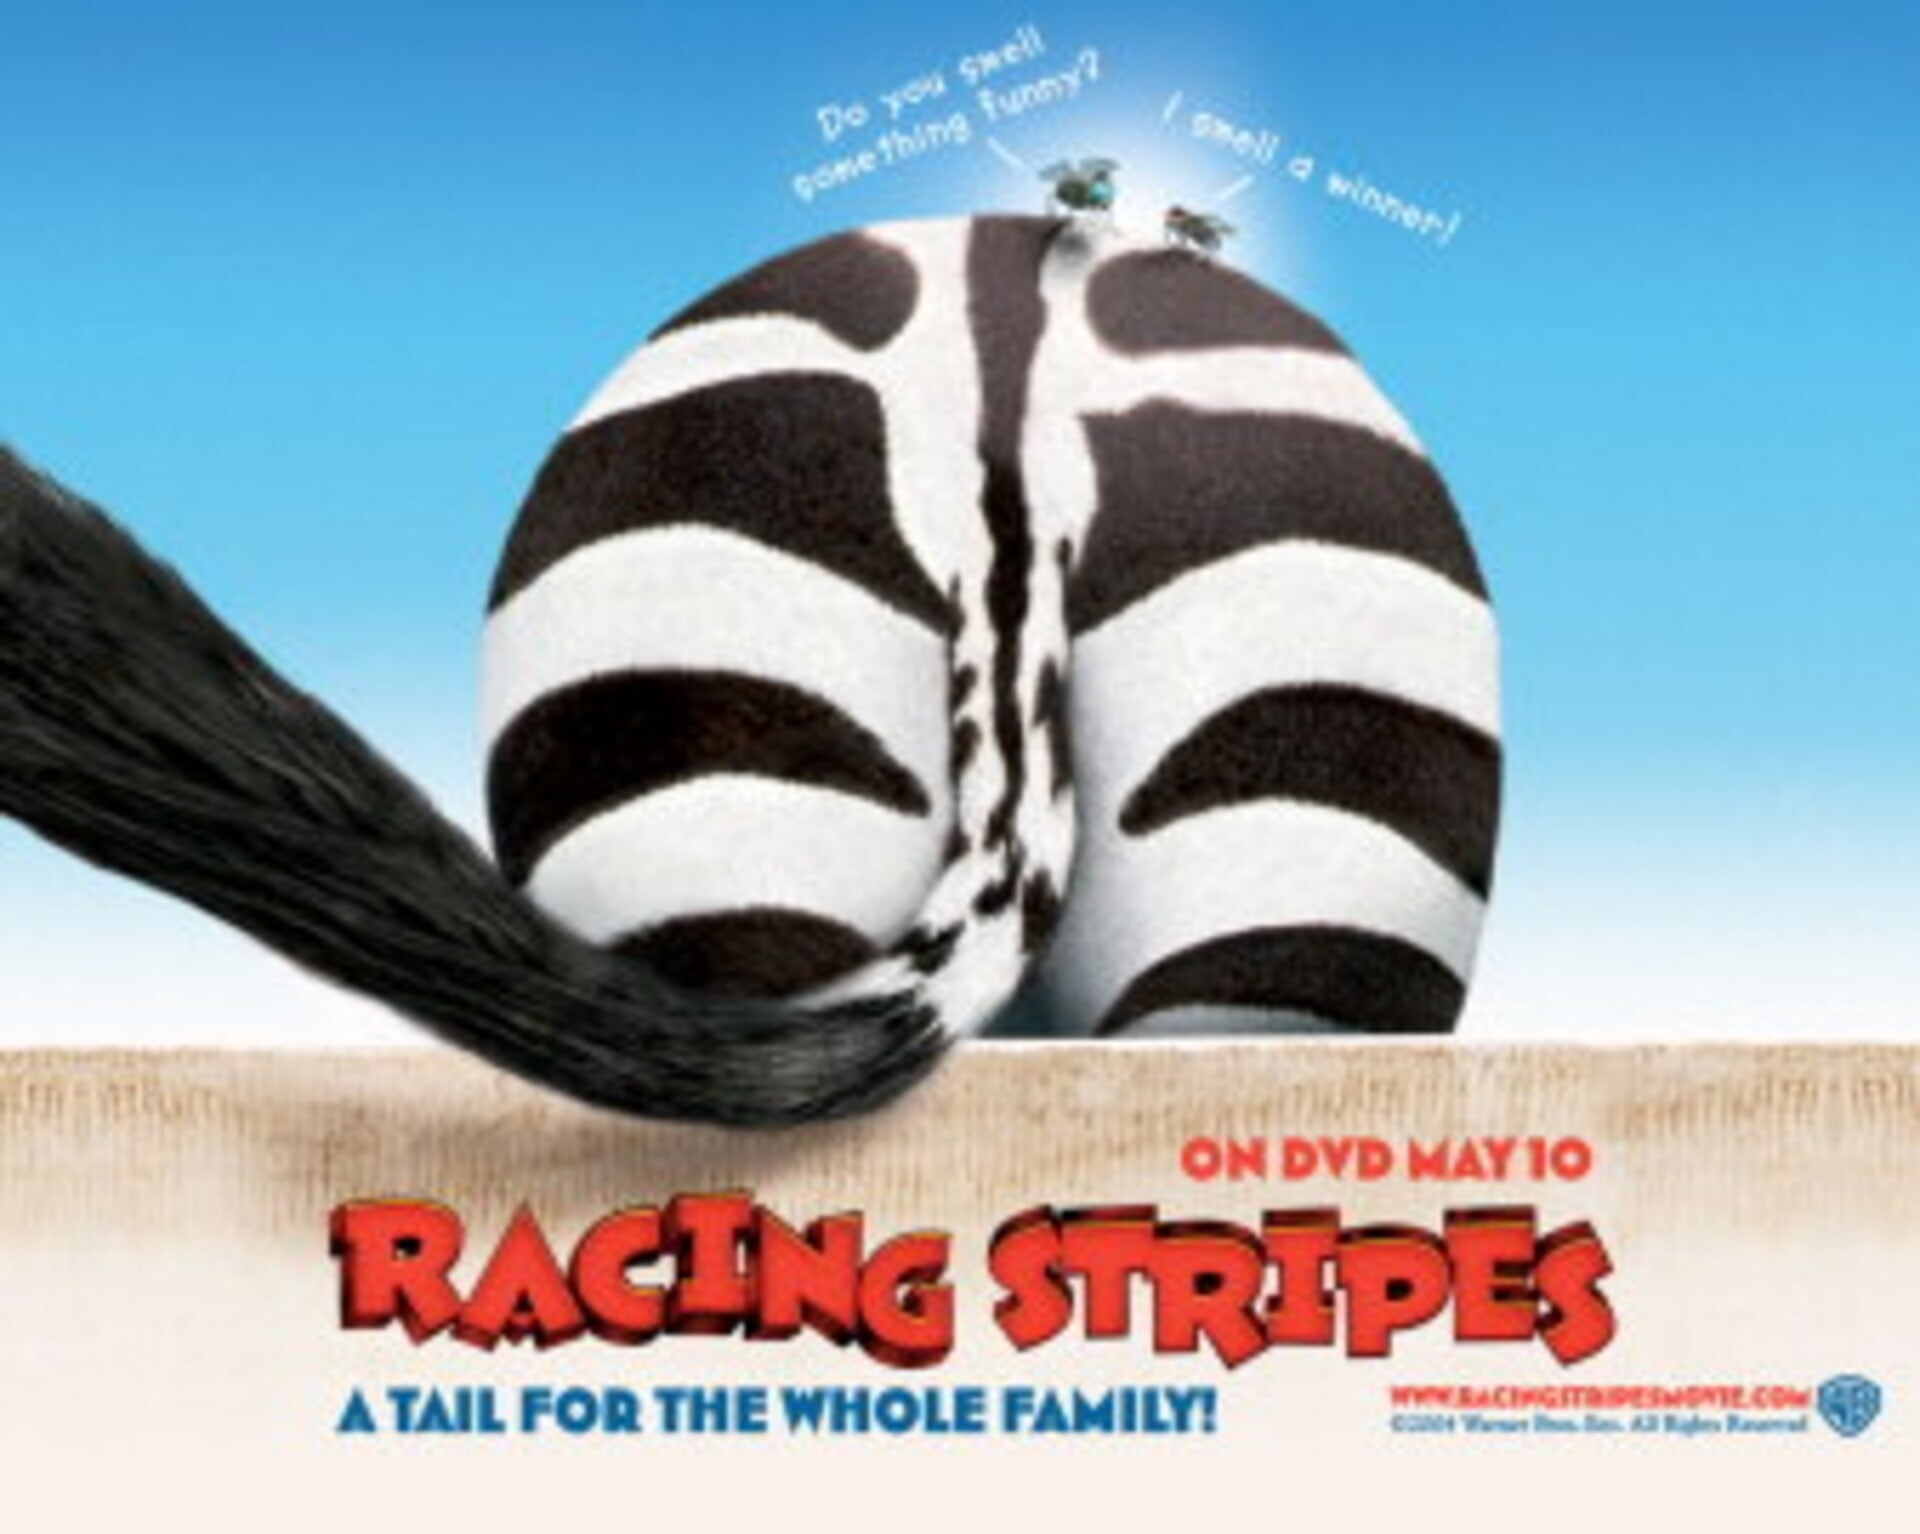 Racing Stripes - Image 61